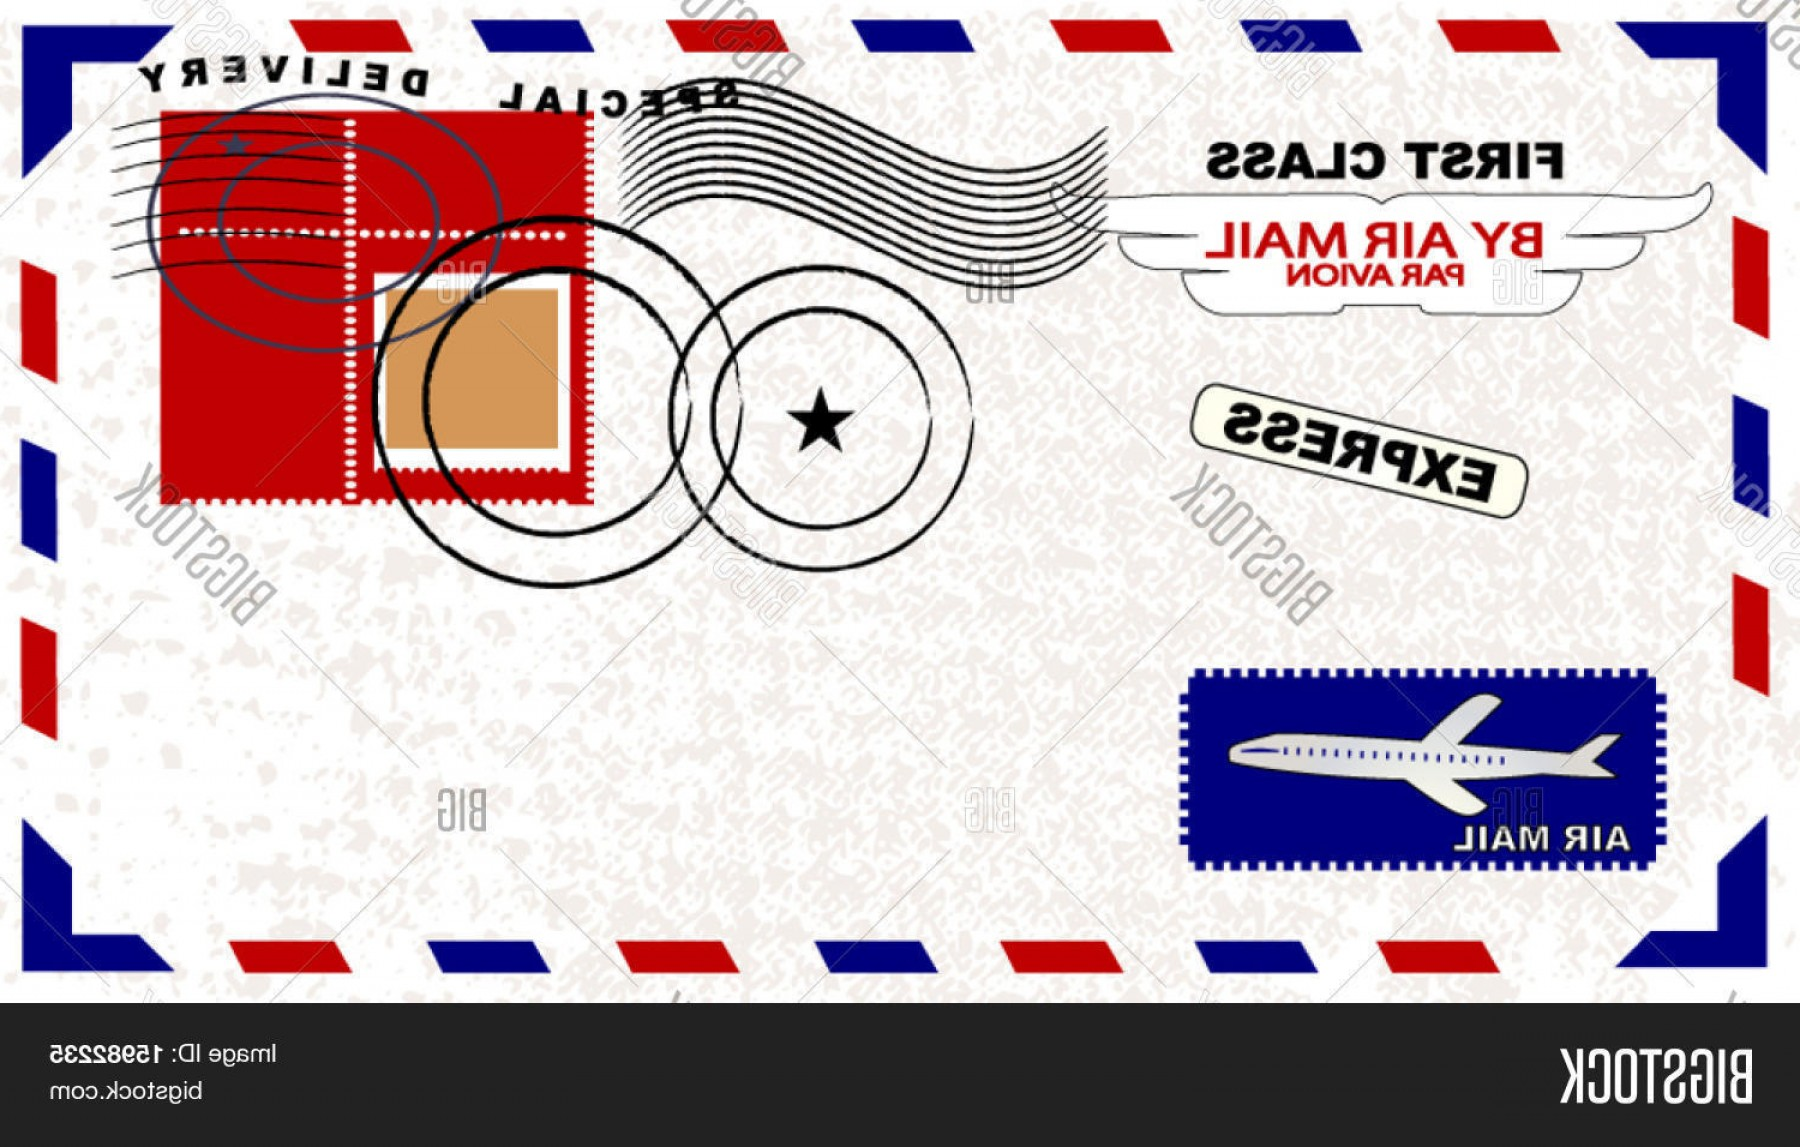 Vector Envelope Express: Stock Vector Air Mail Envelope With Postage